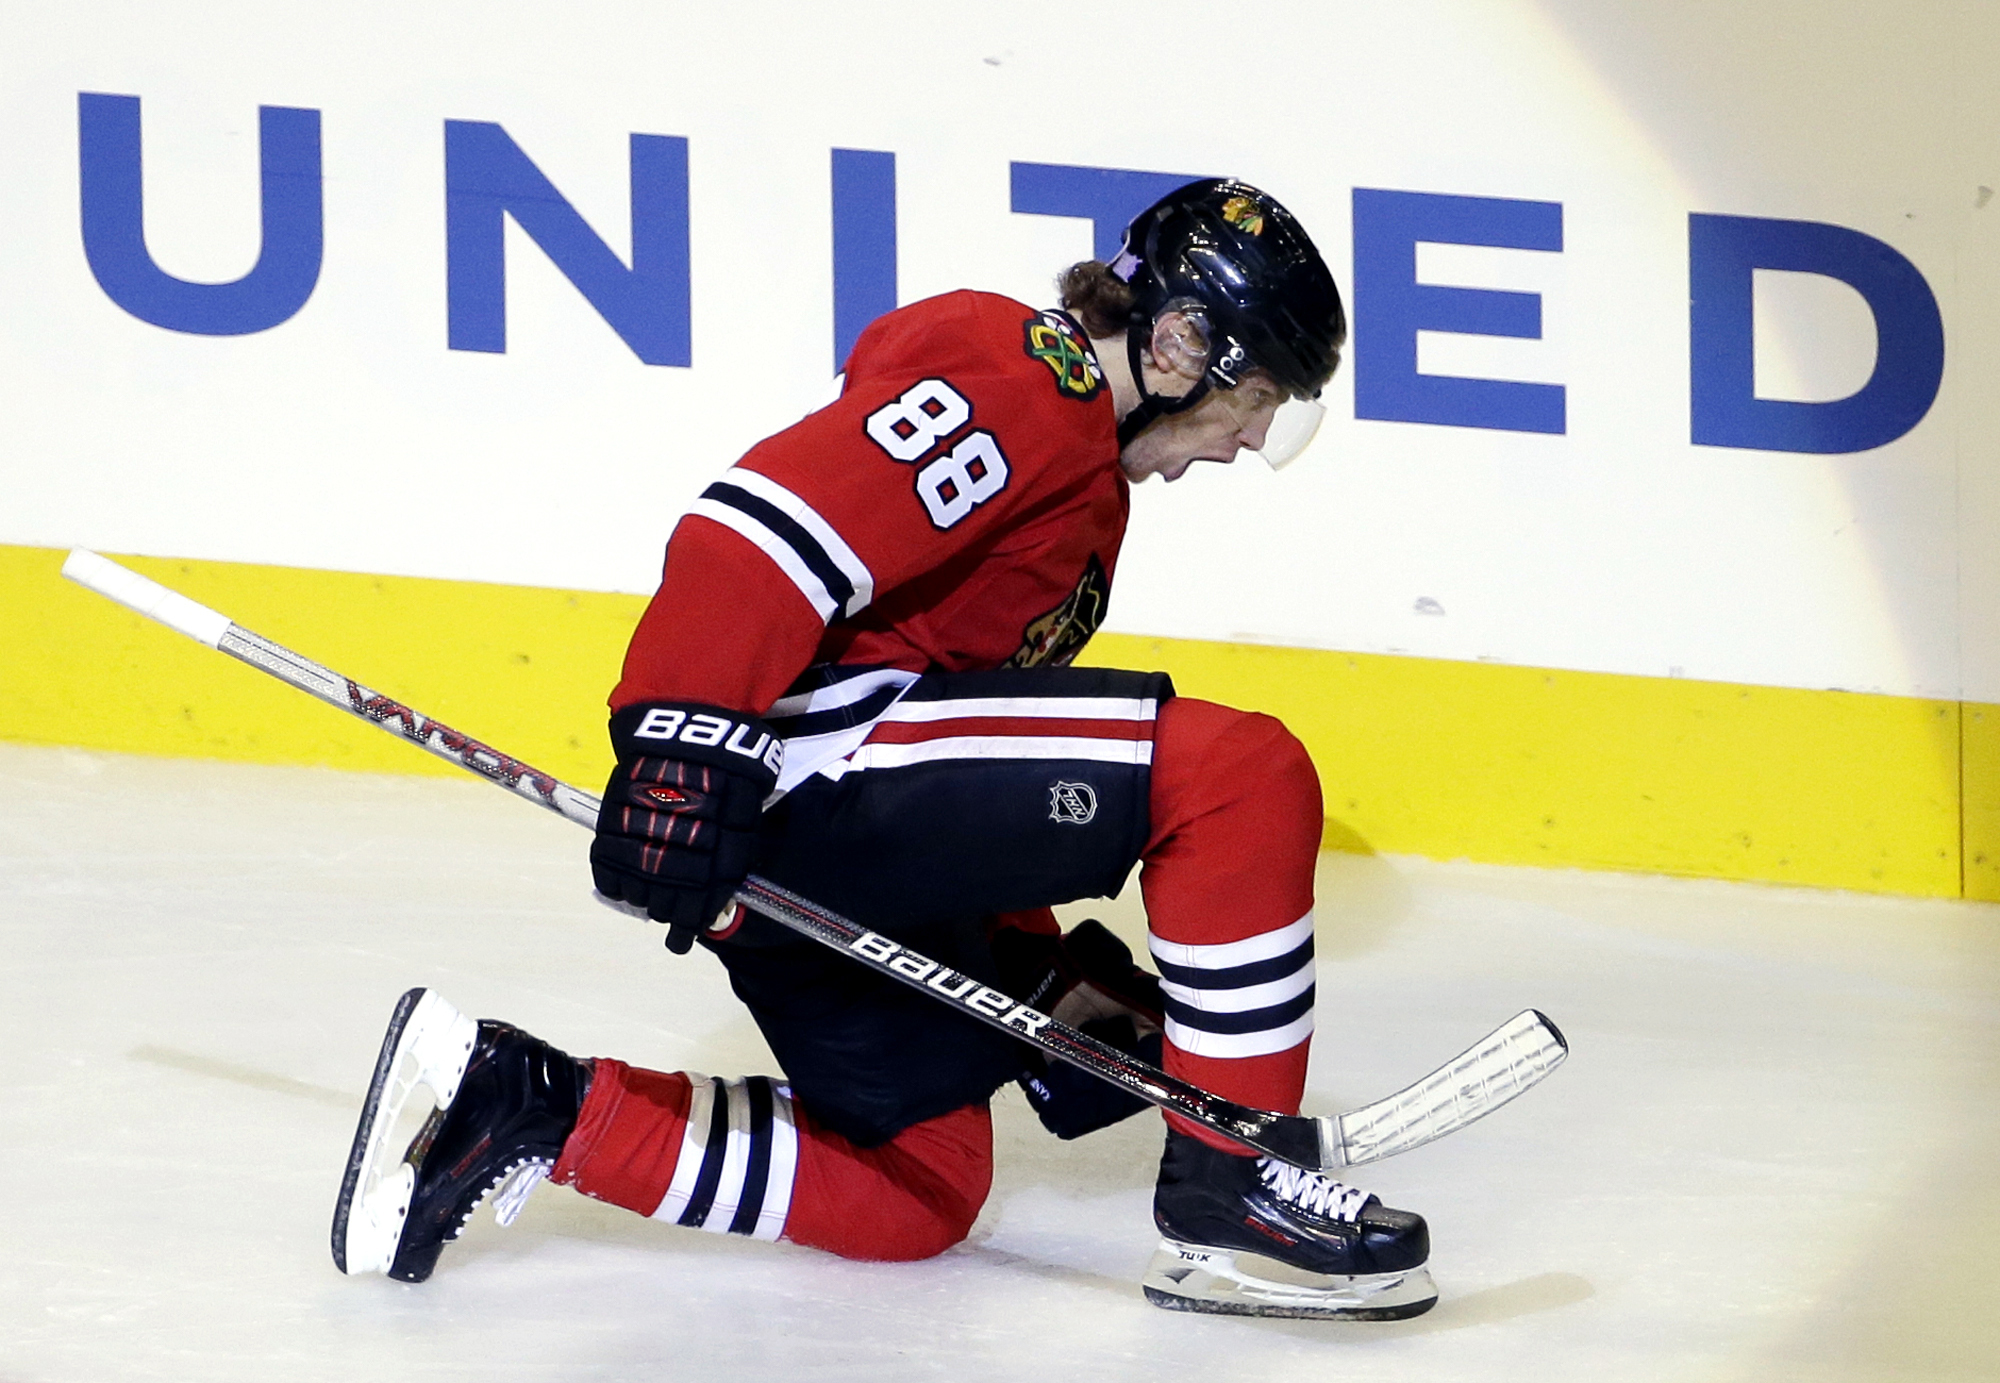 FILE - In this Nov. 8, 2015, file photo, Chicago Blackhawks right wing Patrick Kane celebrates after scoring his goal during the third period of an NHL hockey game against the Edmonton Oilers  in Chicago. Kane's second-period goal against Minnesota on Tue